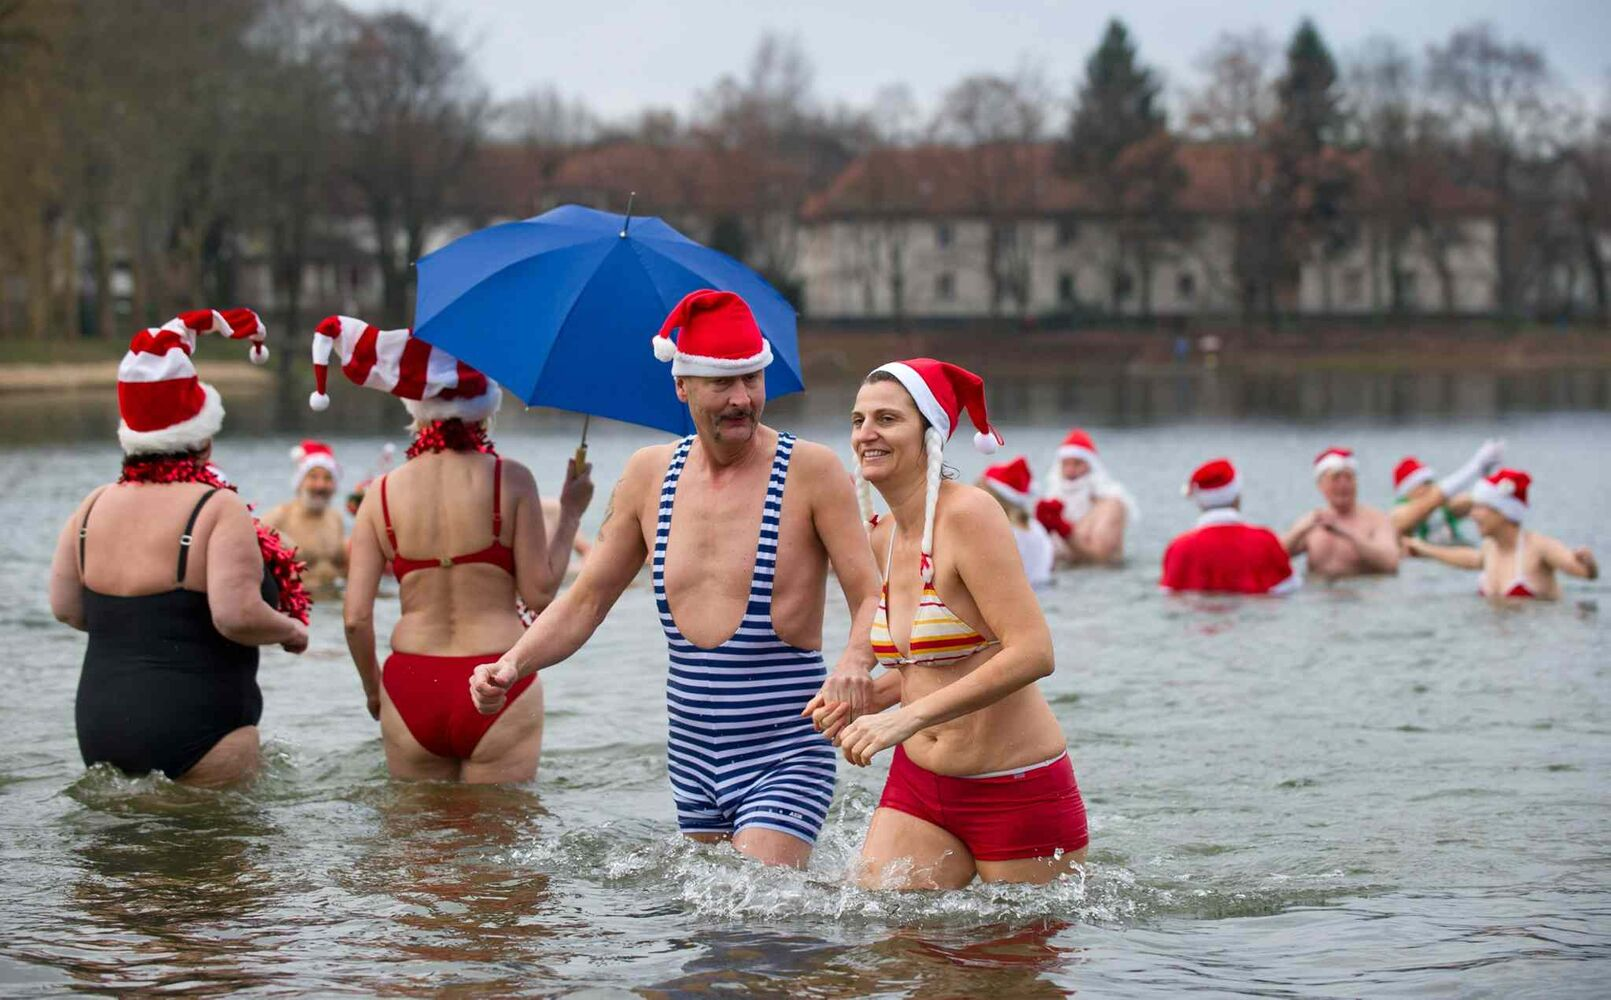 Costumed members of the Berlin Seals go to swim  in Lake Orankesee in Berlin, Germany Wednesday. Traditionally, the group meets  for swimming on Christmas Day.  (The Associated Press)